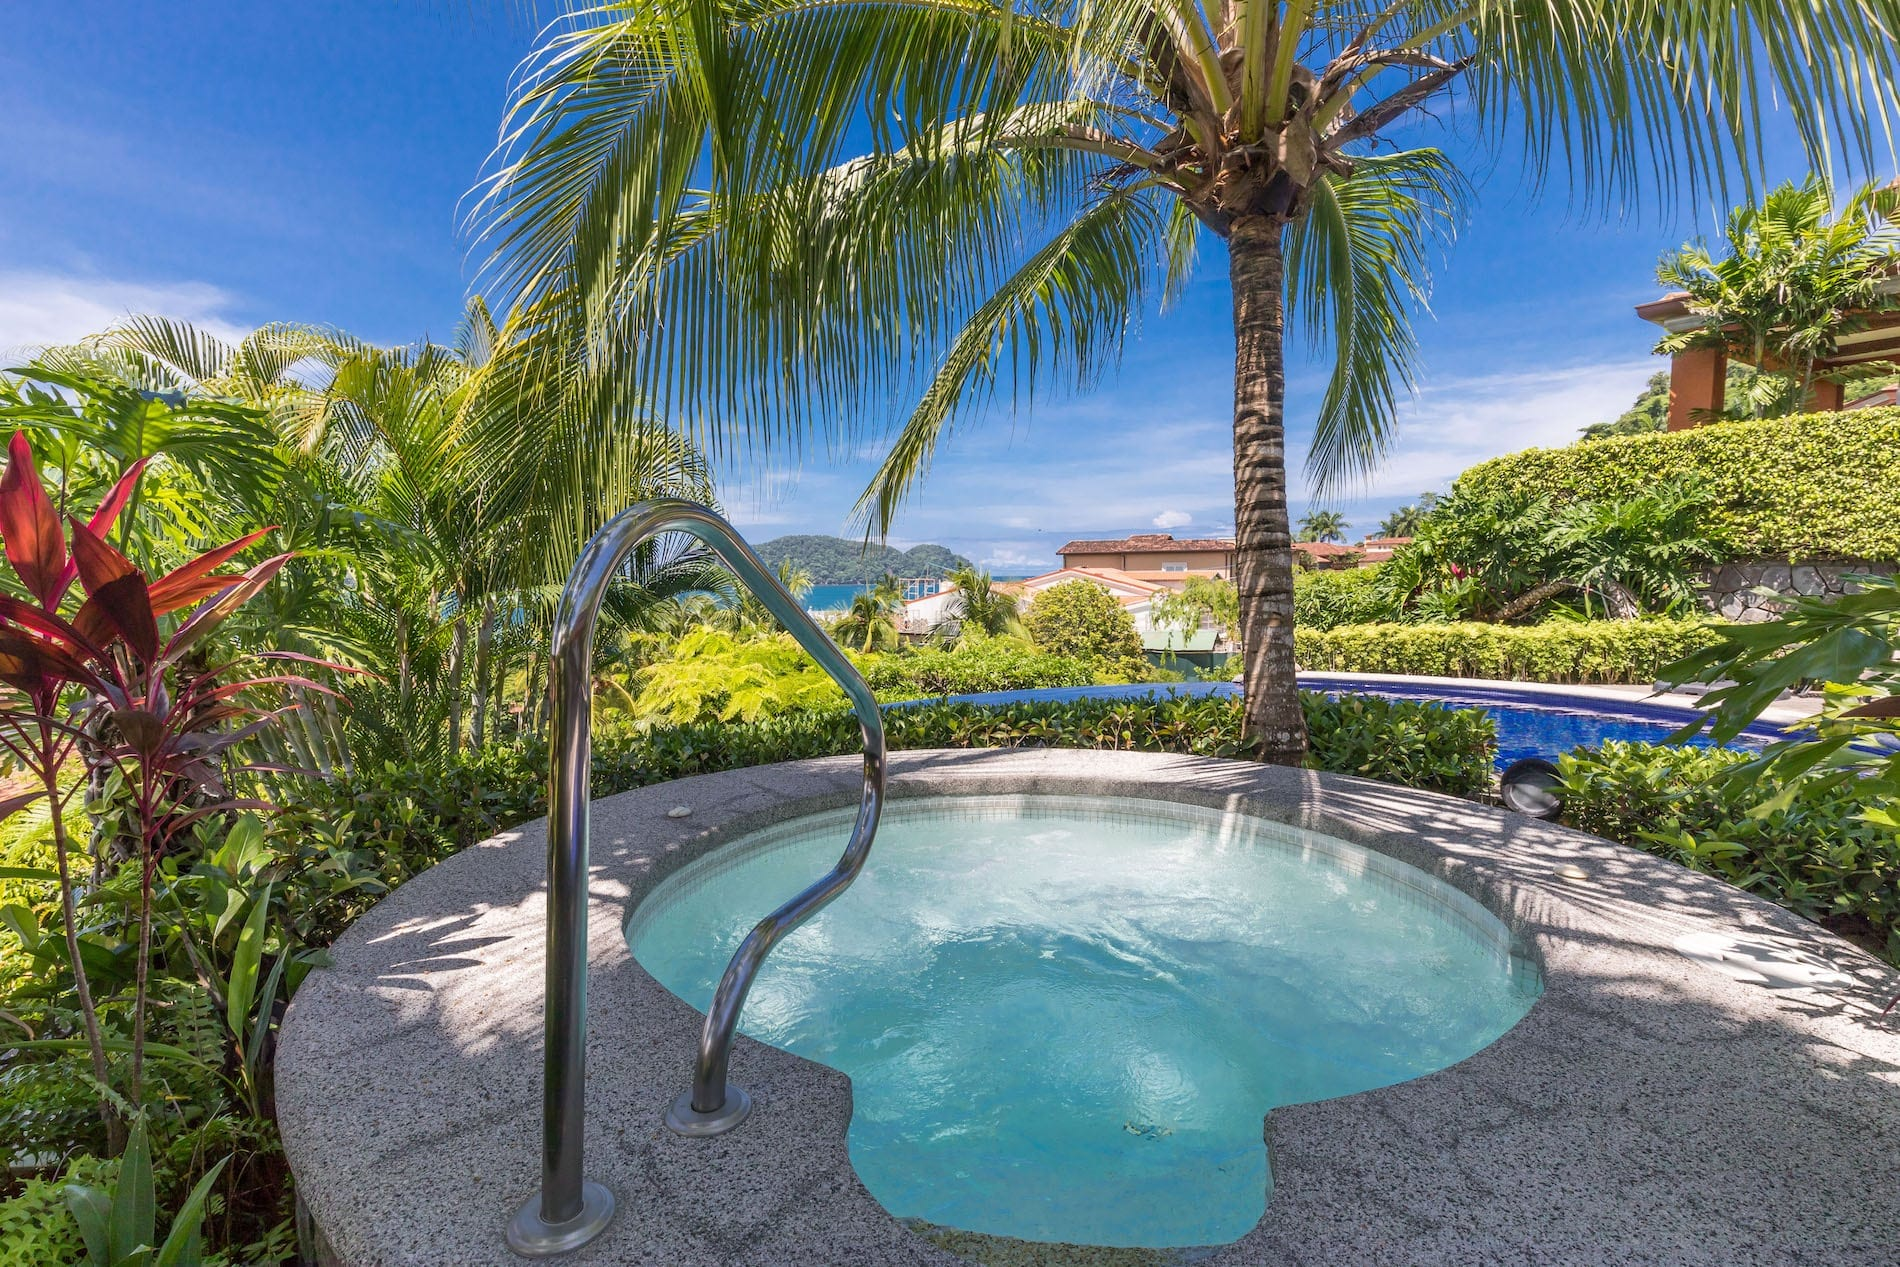 CONDO - 3 Bedroom Stand Alone Ocean View Villa With Pool!!!